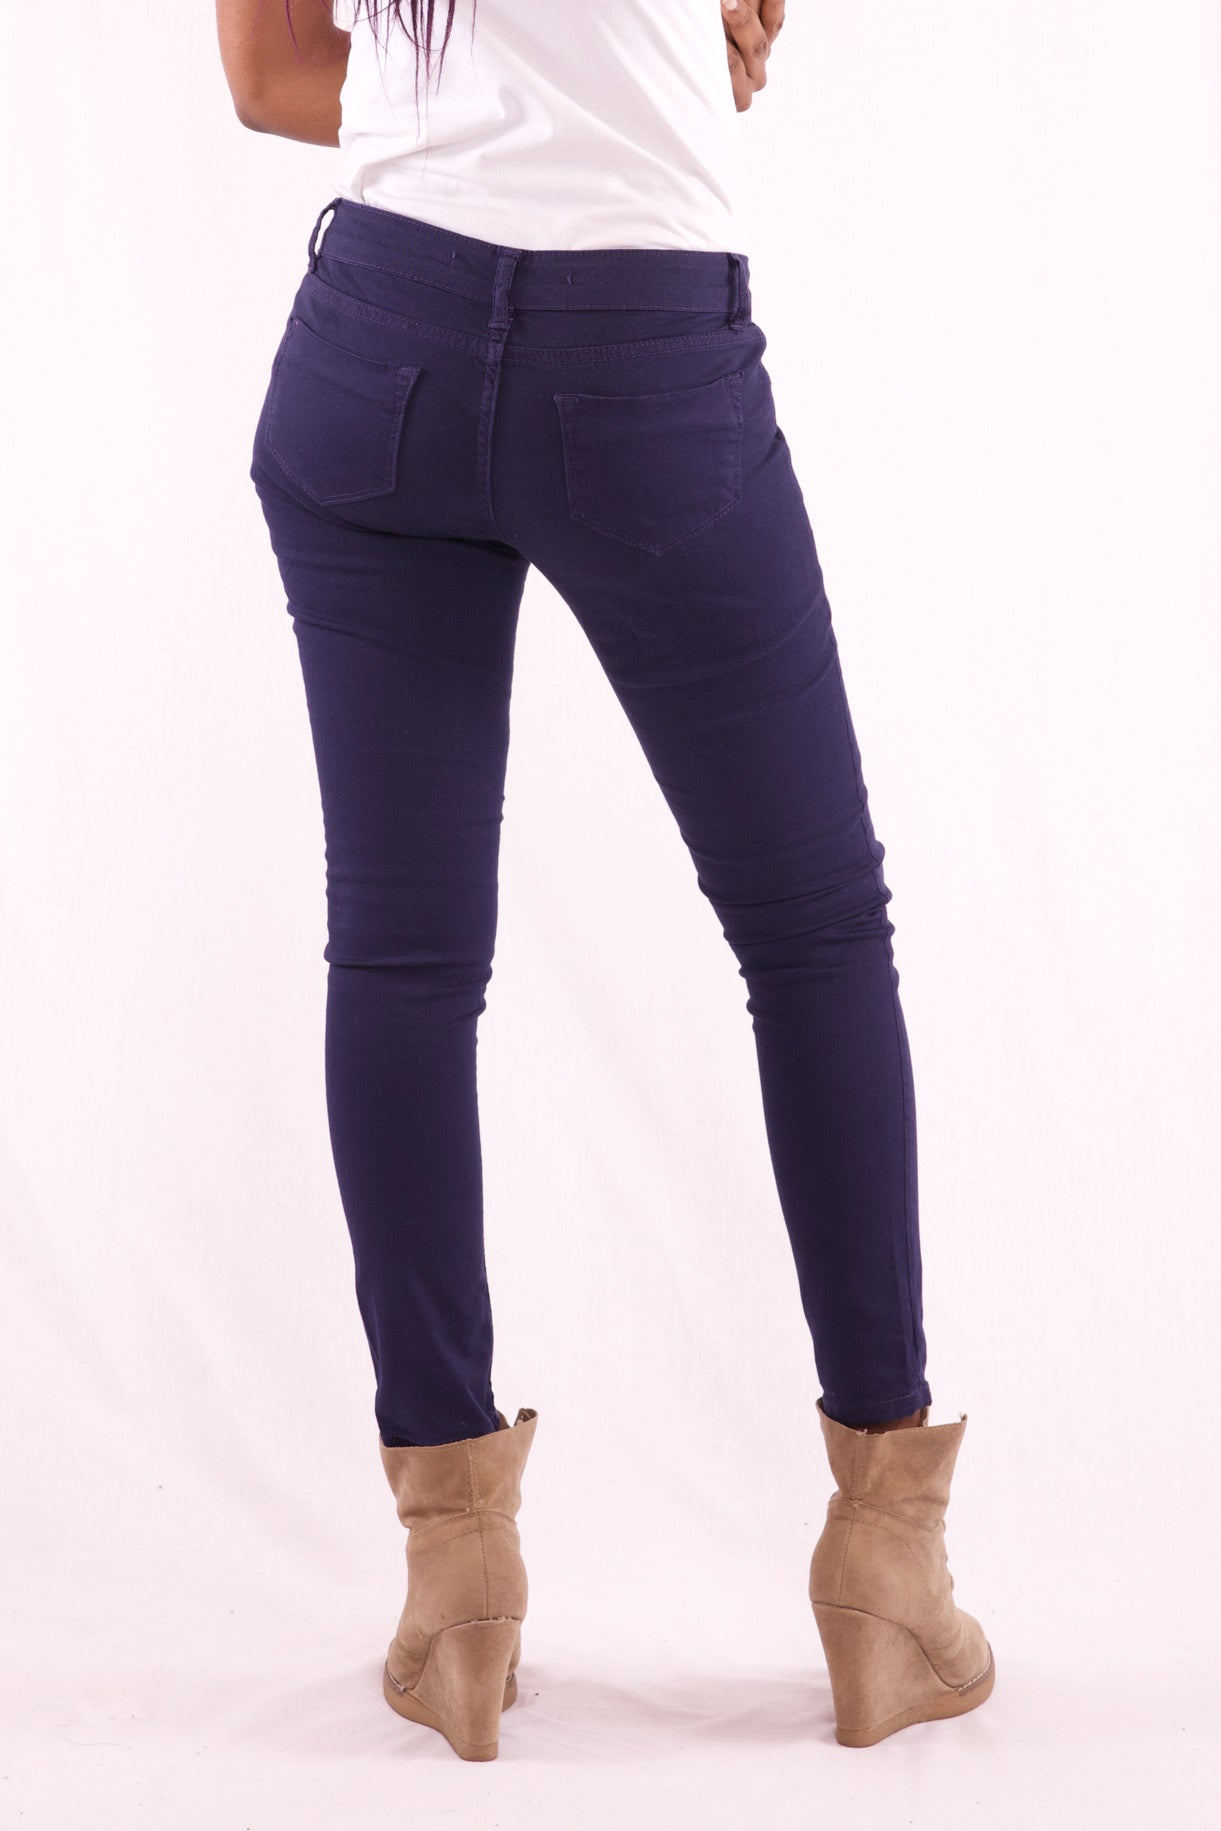 Women Slim Fit Navy Blue Jeans - Hillmarten